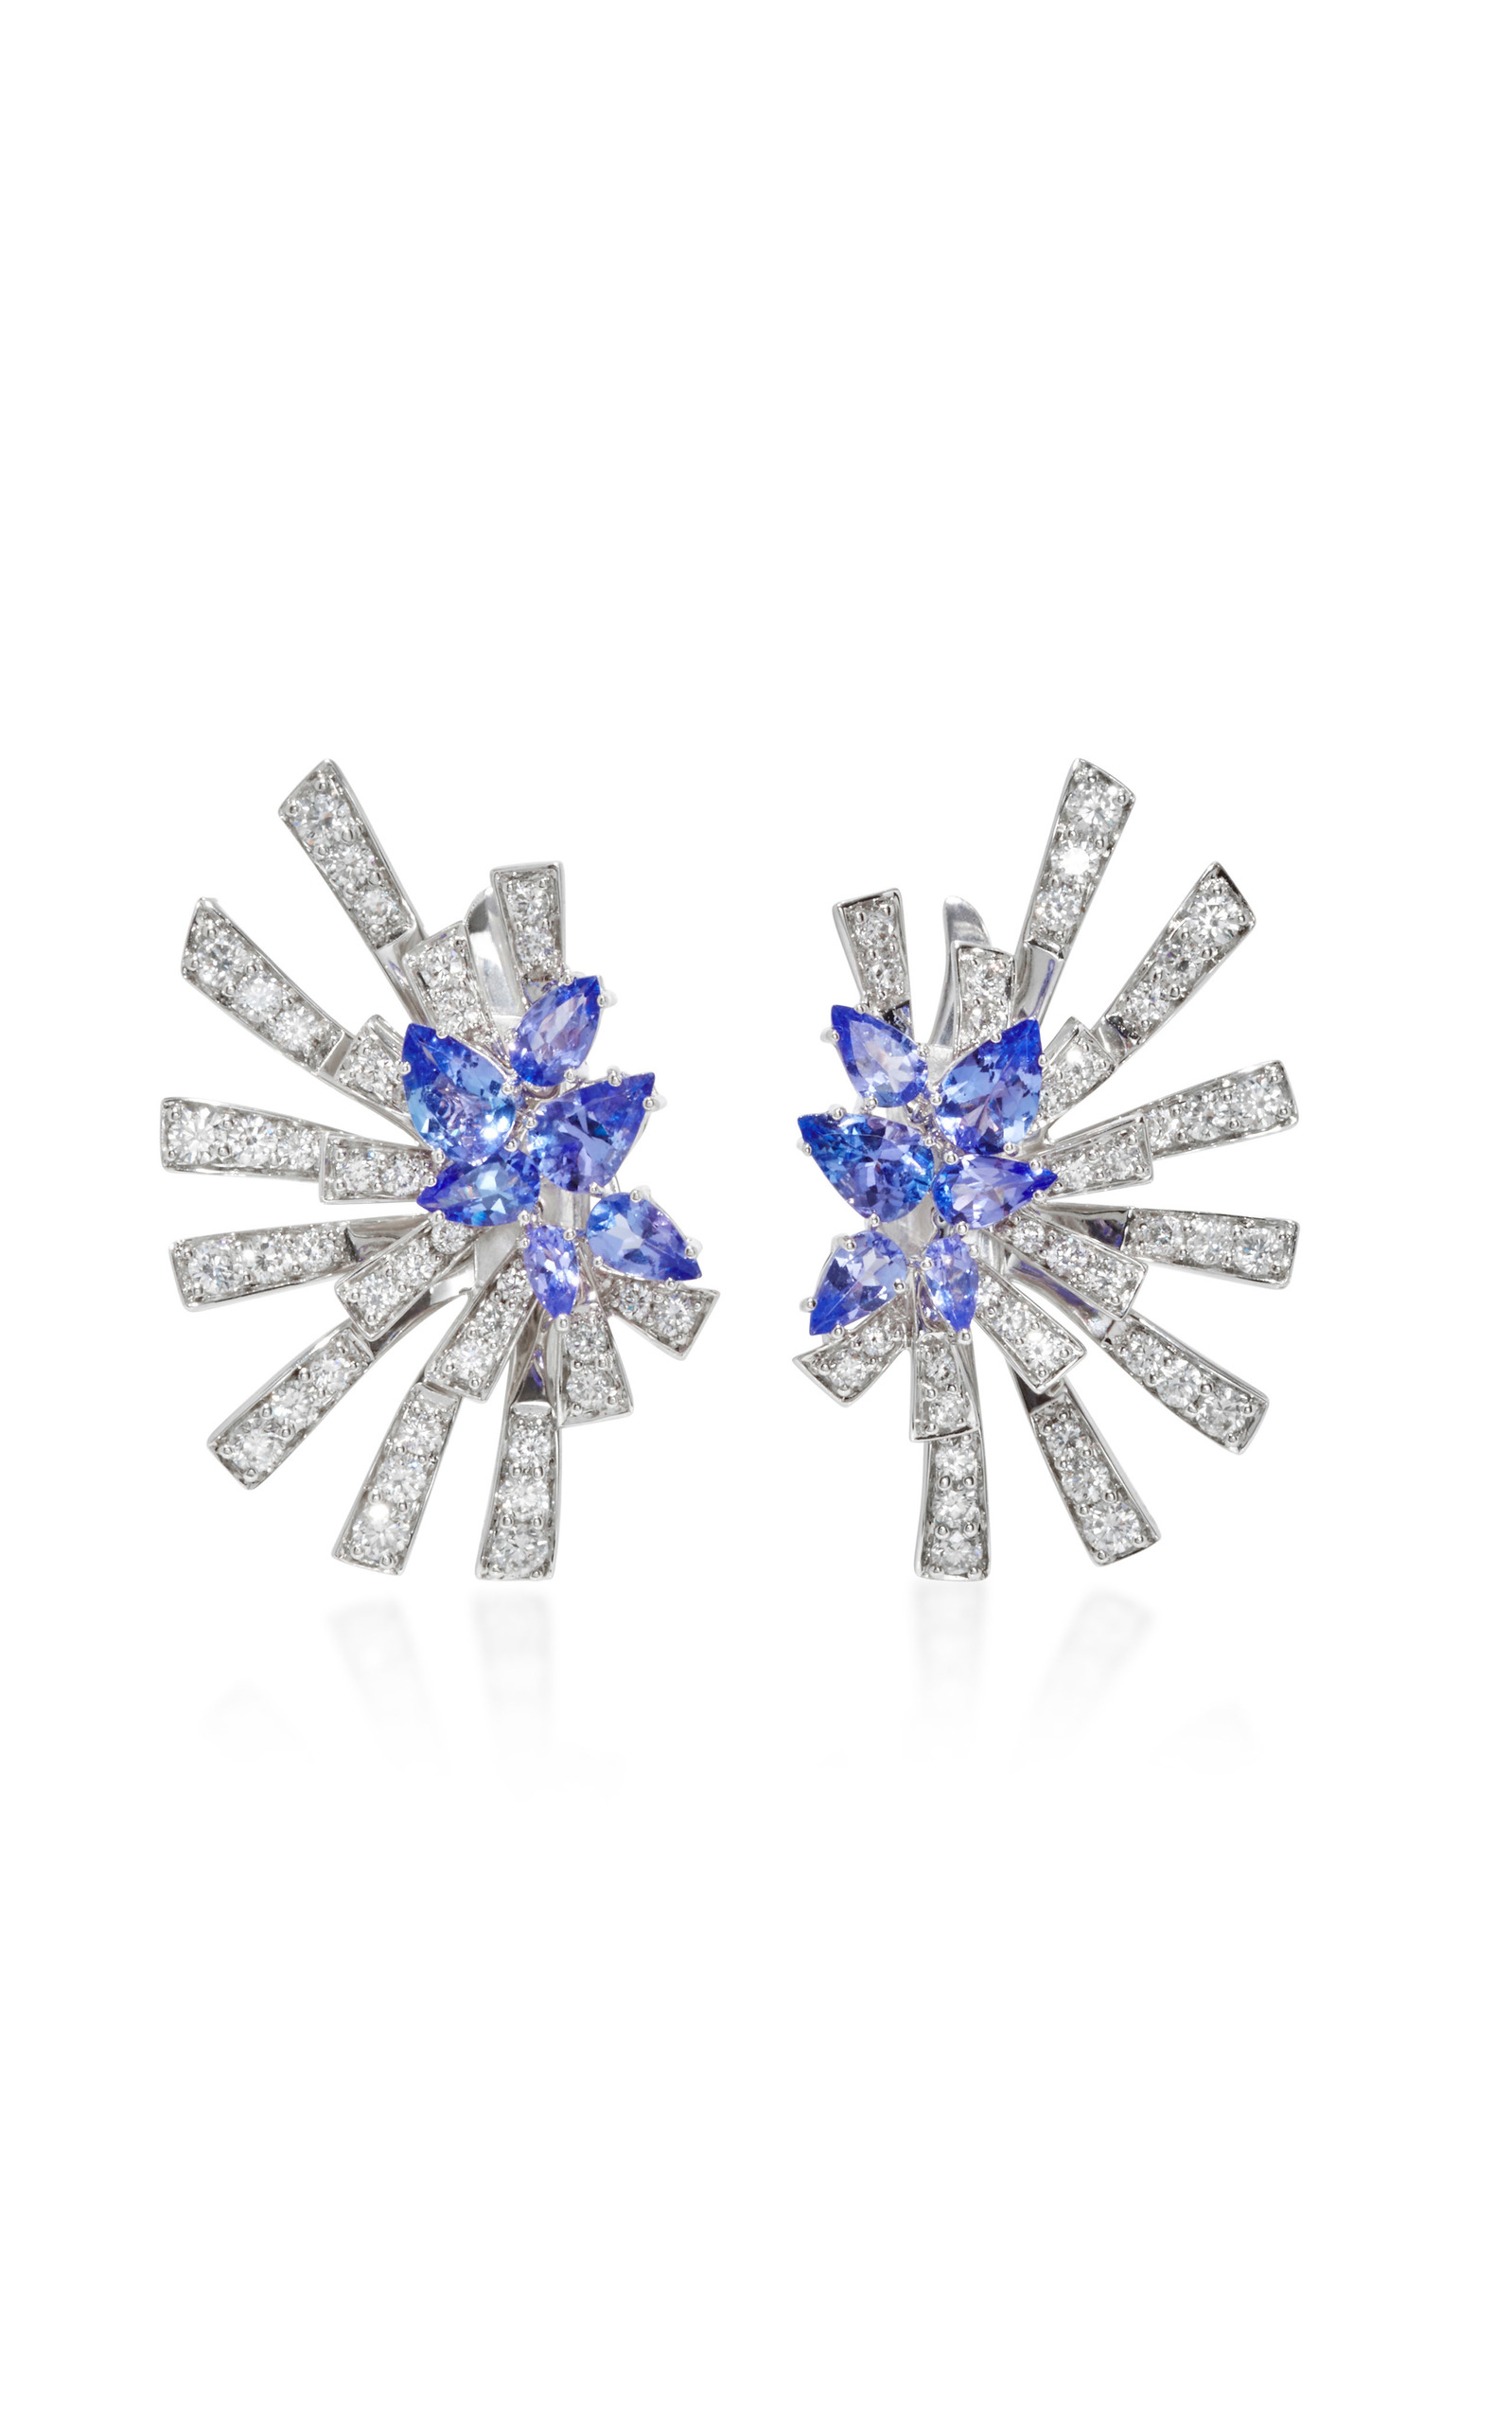 jewels earrings genuine ct products earring collections stud gold tanzanite white mar in vir